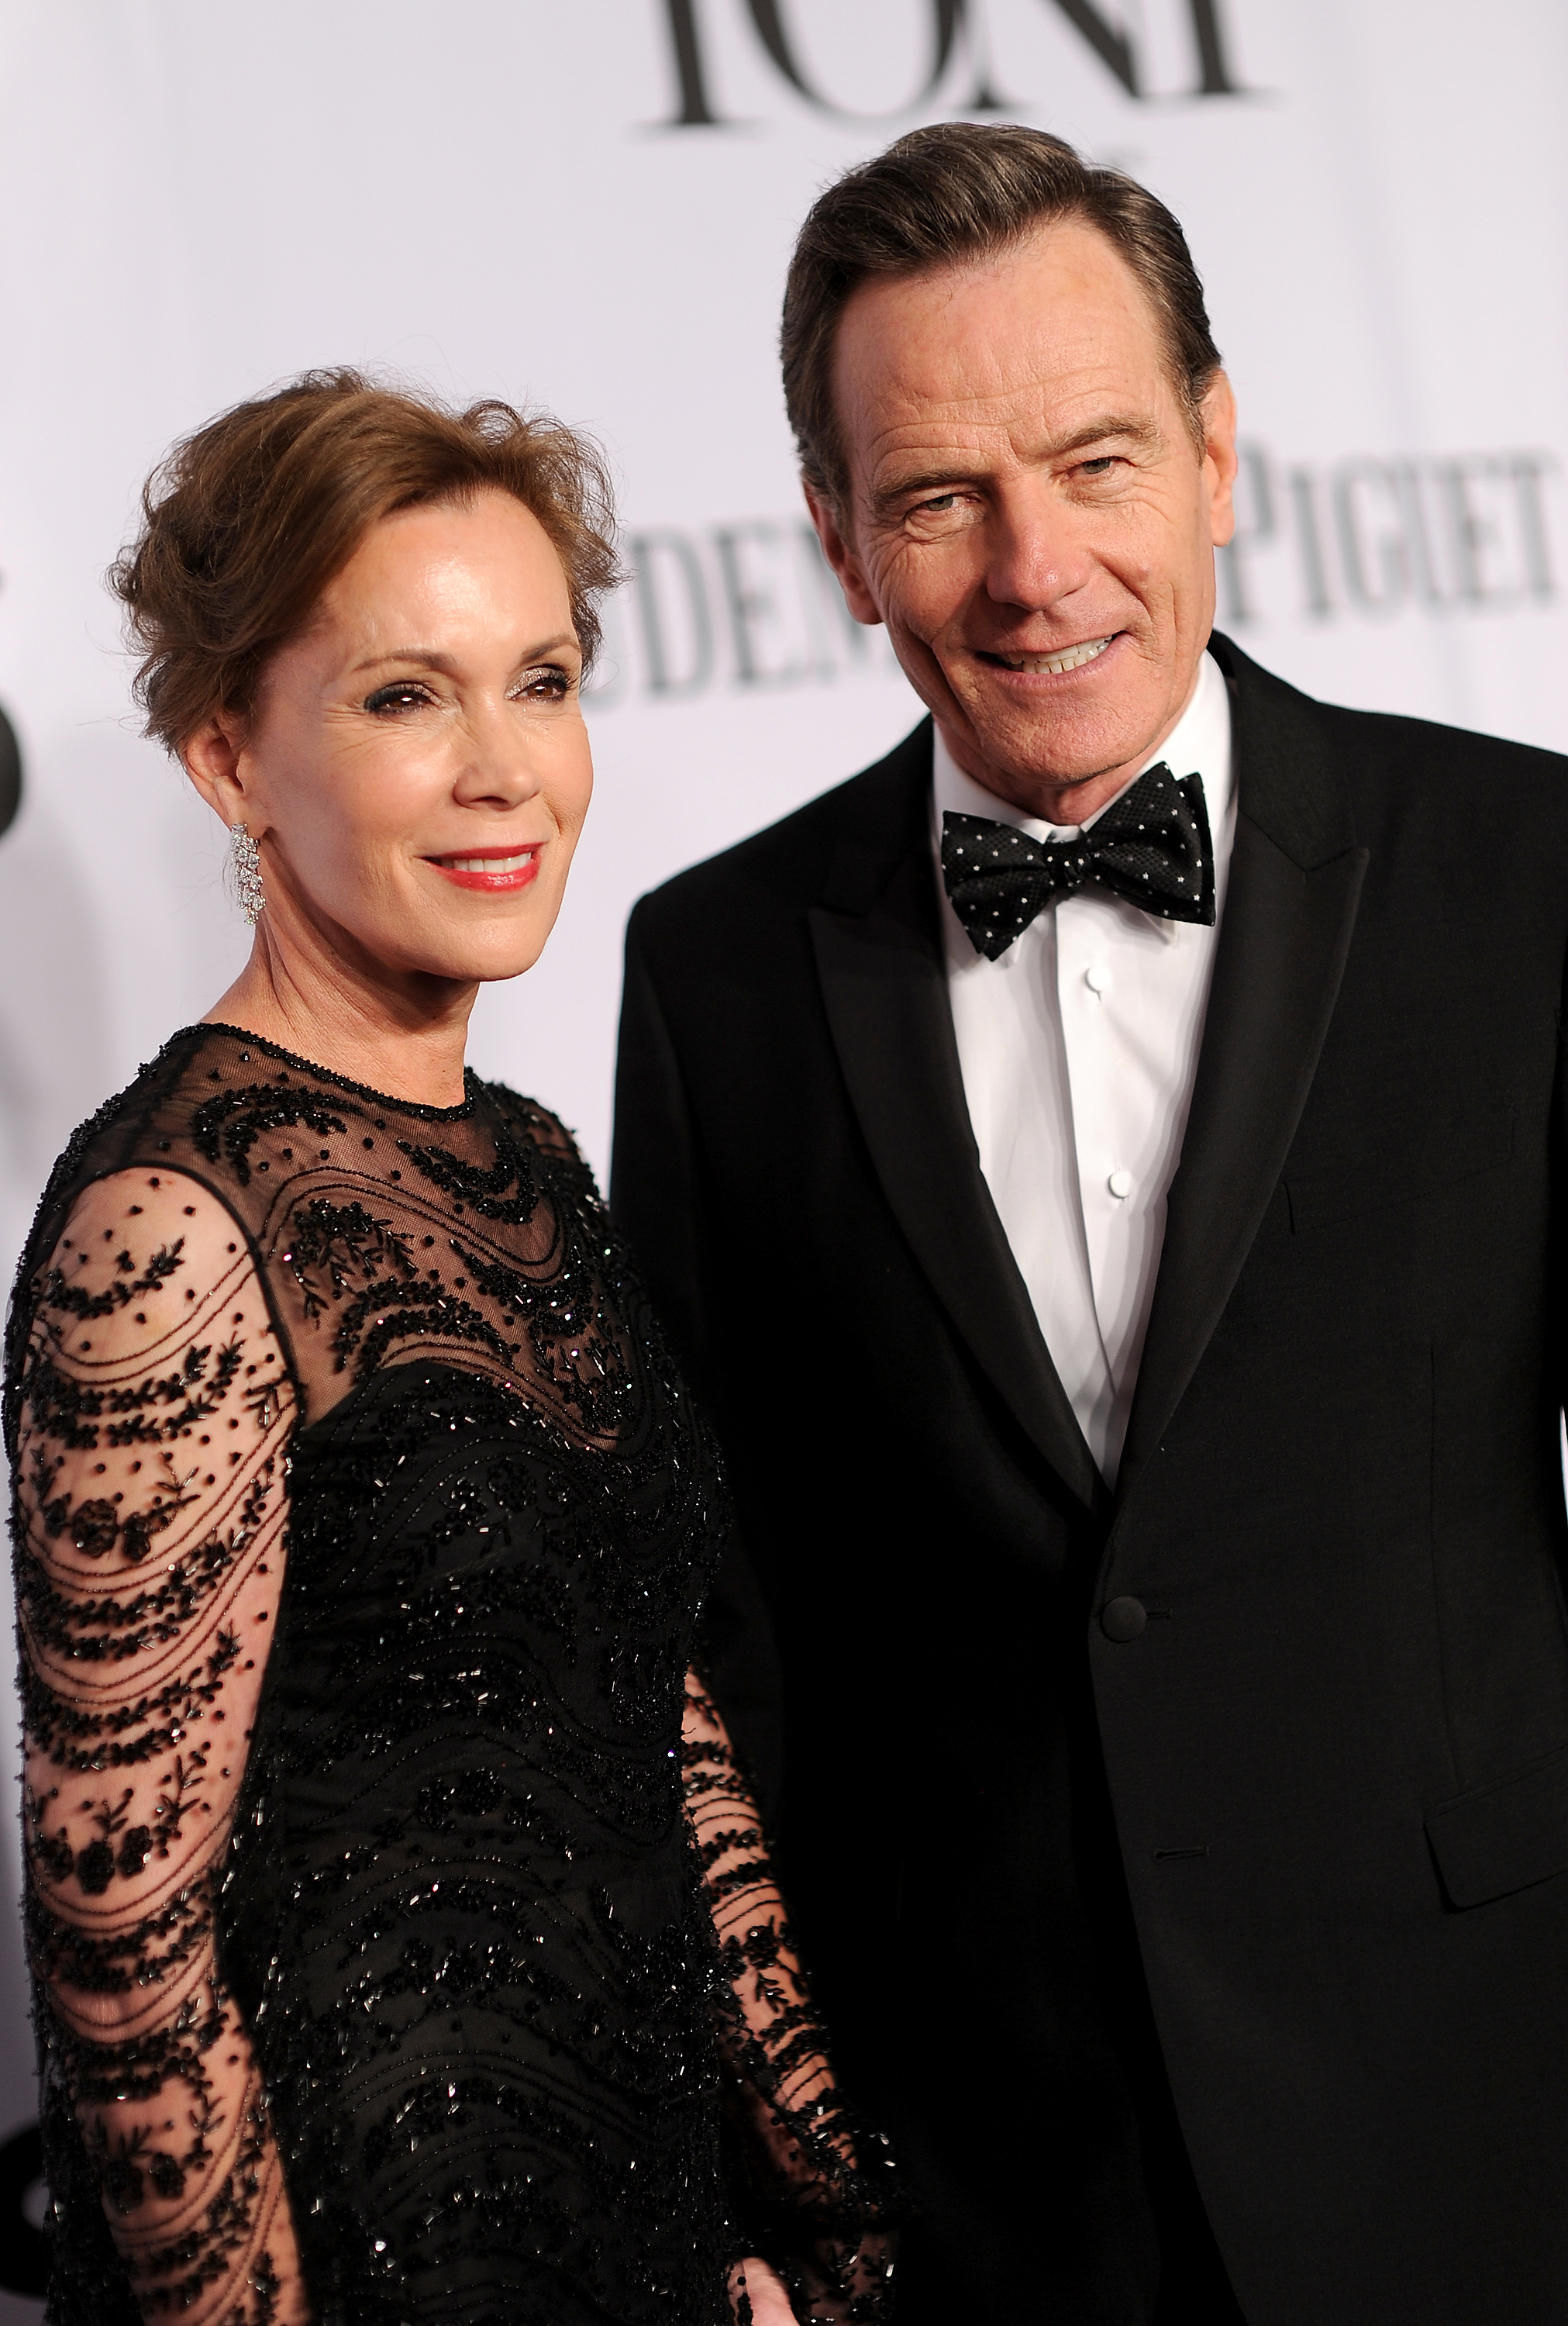 Actors Robin Dearden and Bryan Cranston attends the 68th Annual Tony Awards at Radio City Music Hall on June 8, 2014 in New York City.